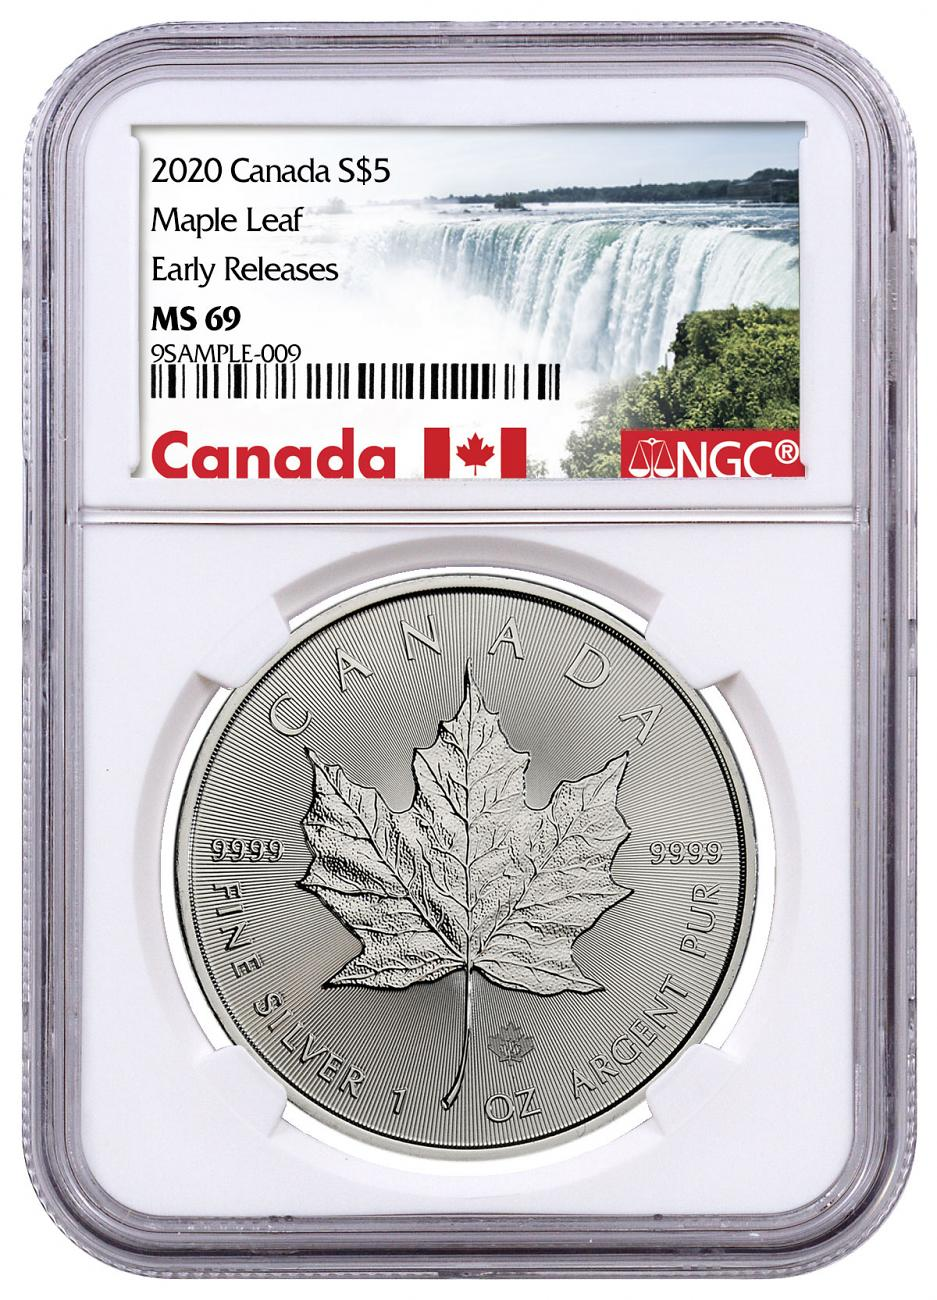 2020 Canada 1 oz Silver Maple Leaf $5 Coin NGC MS69 ER Exclusive Canada Label